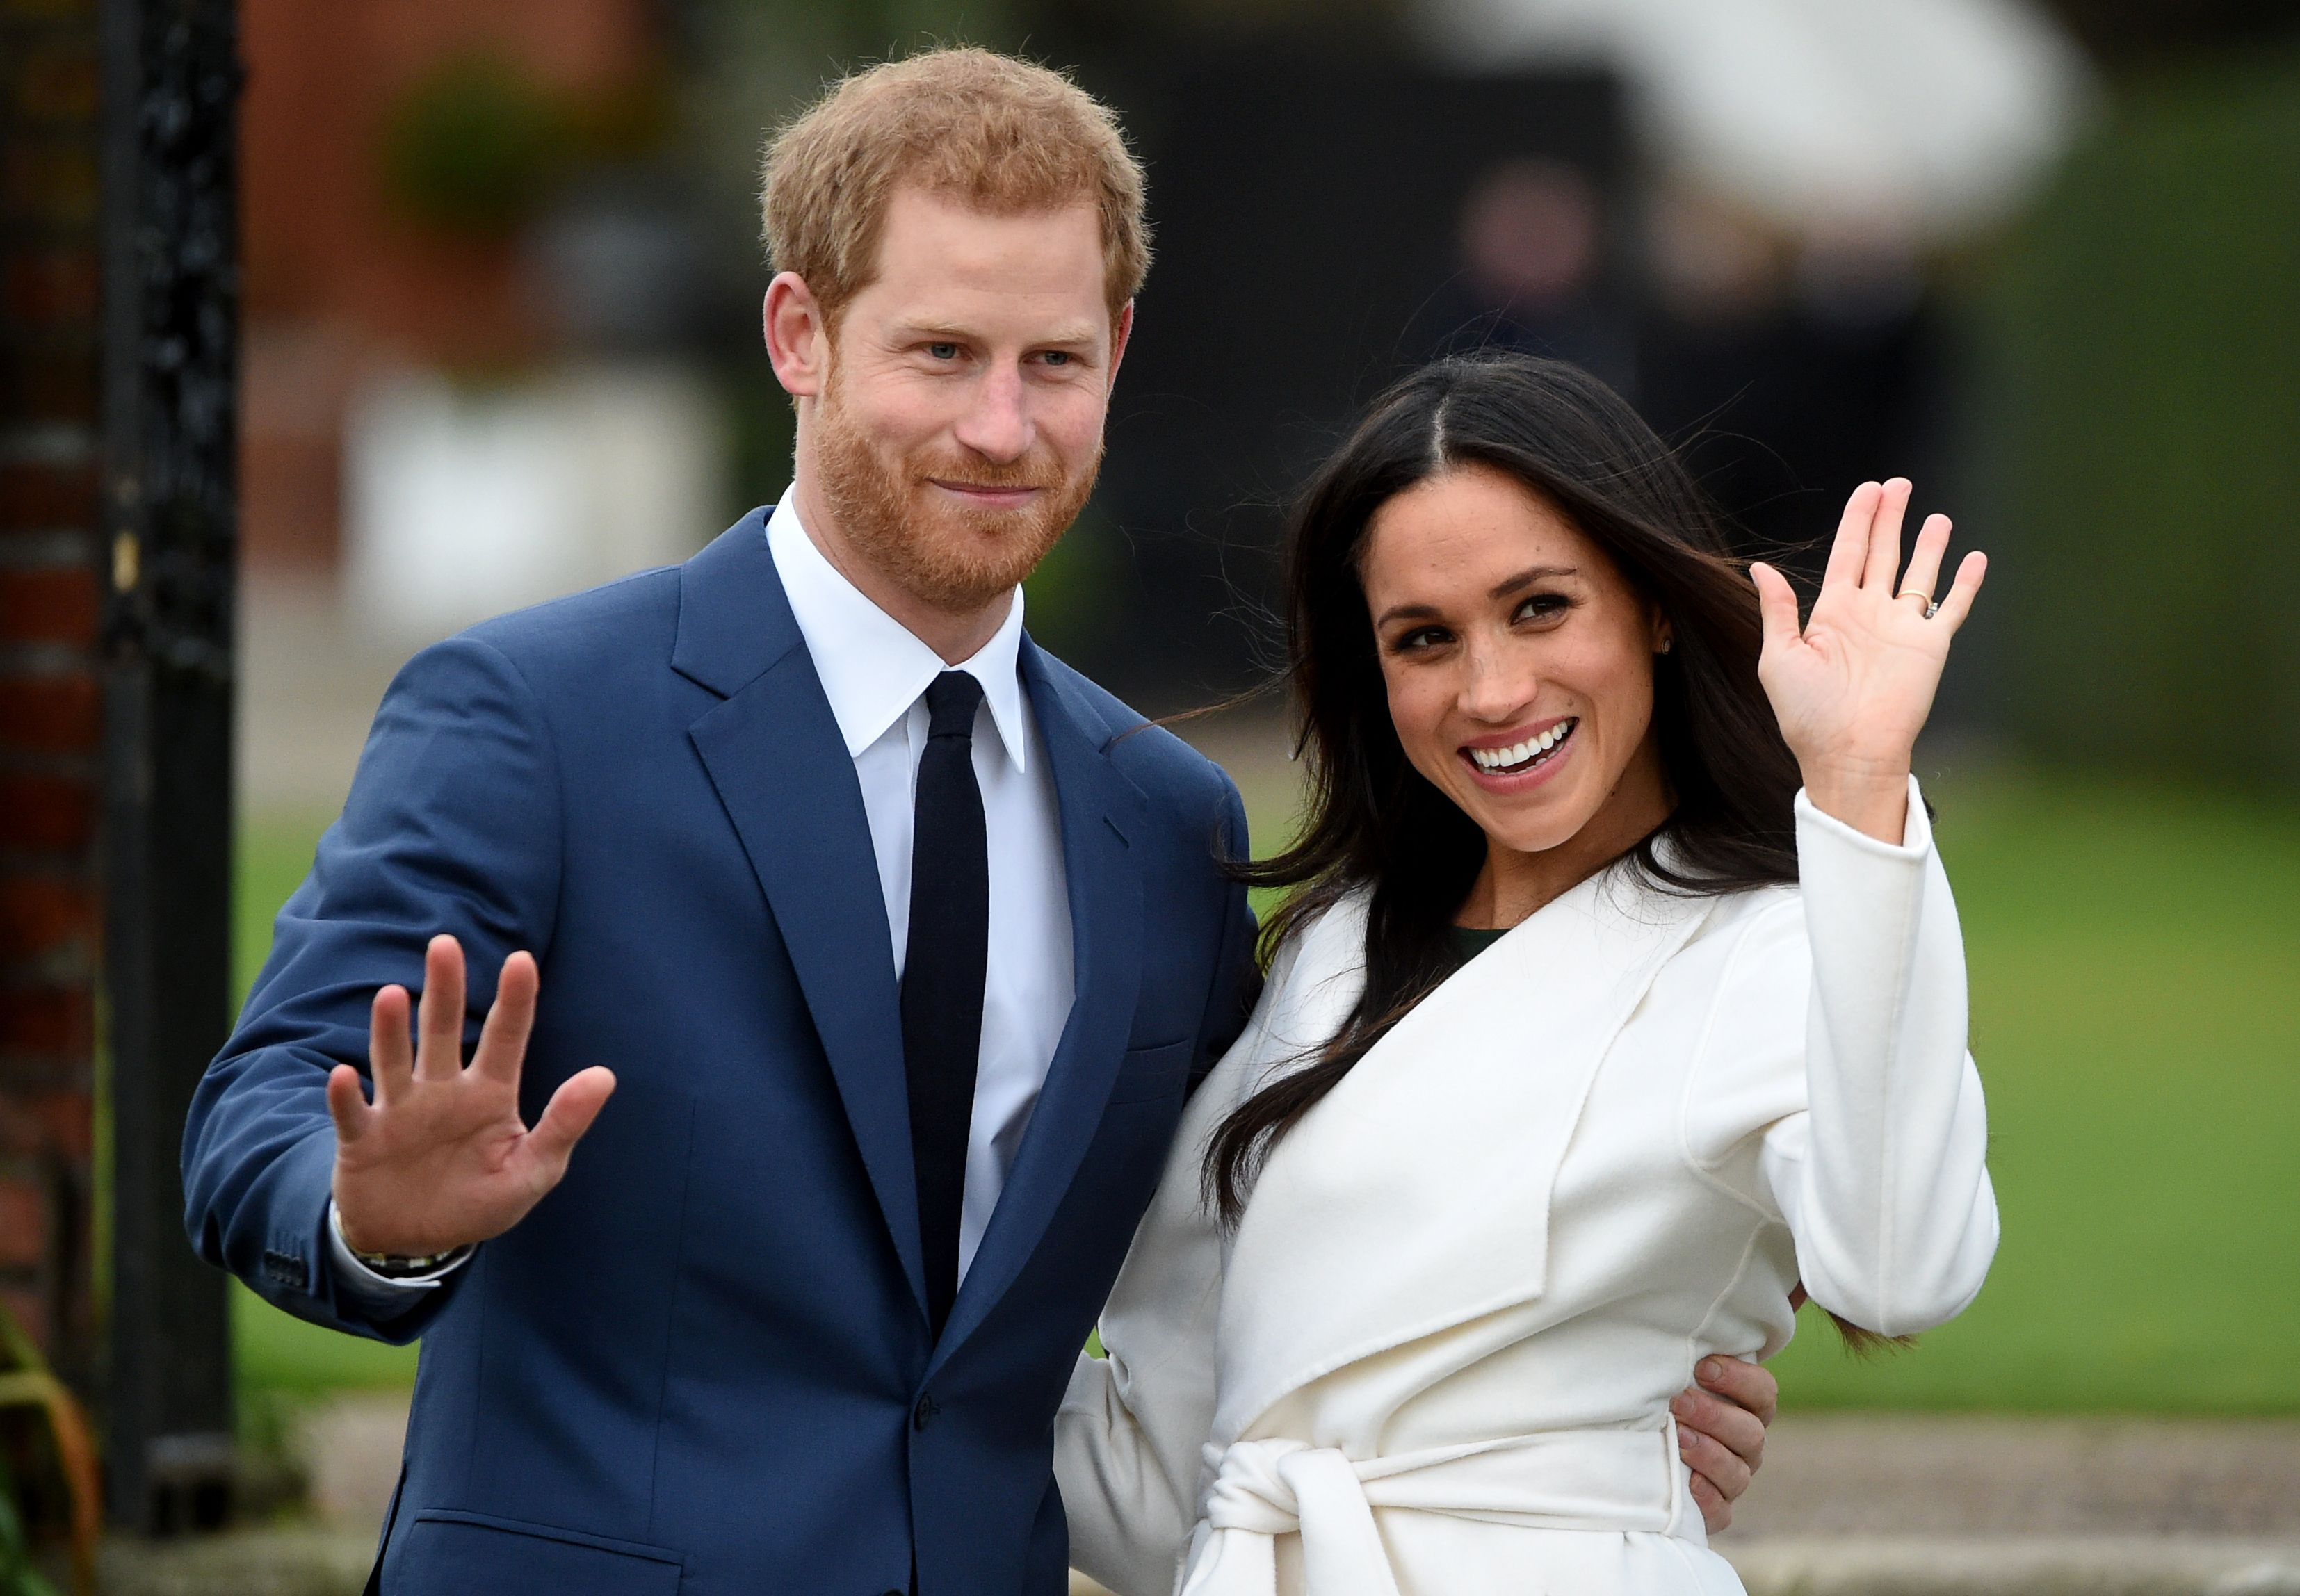 Coverage Of Royal Wedding.Royal Wedding All The Harry And Meghan Movies Specials